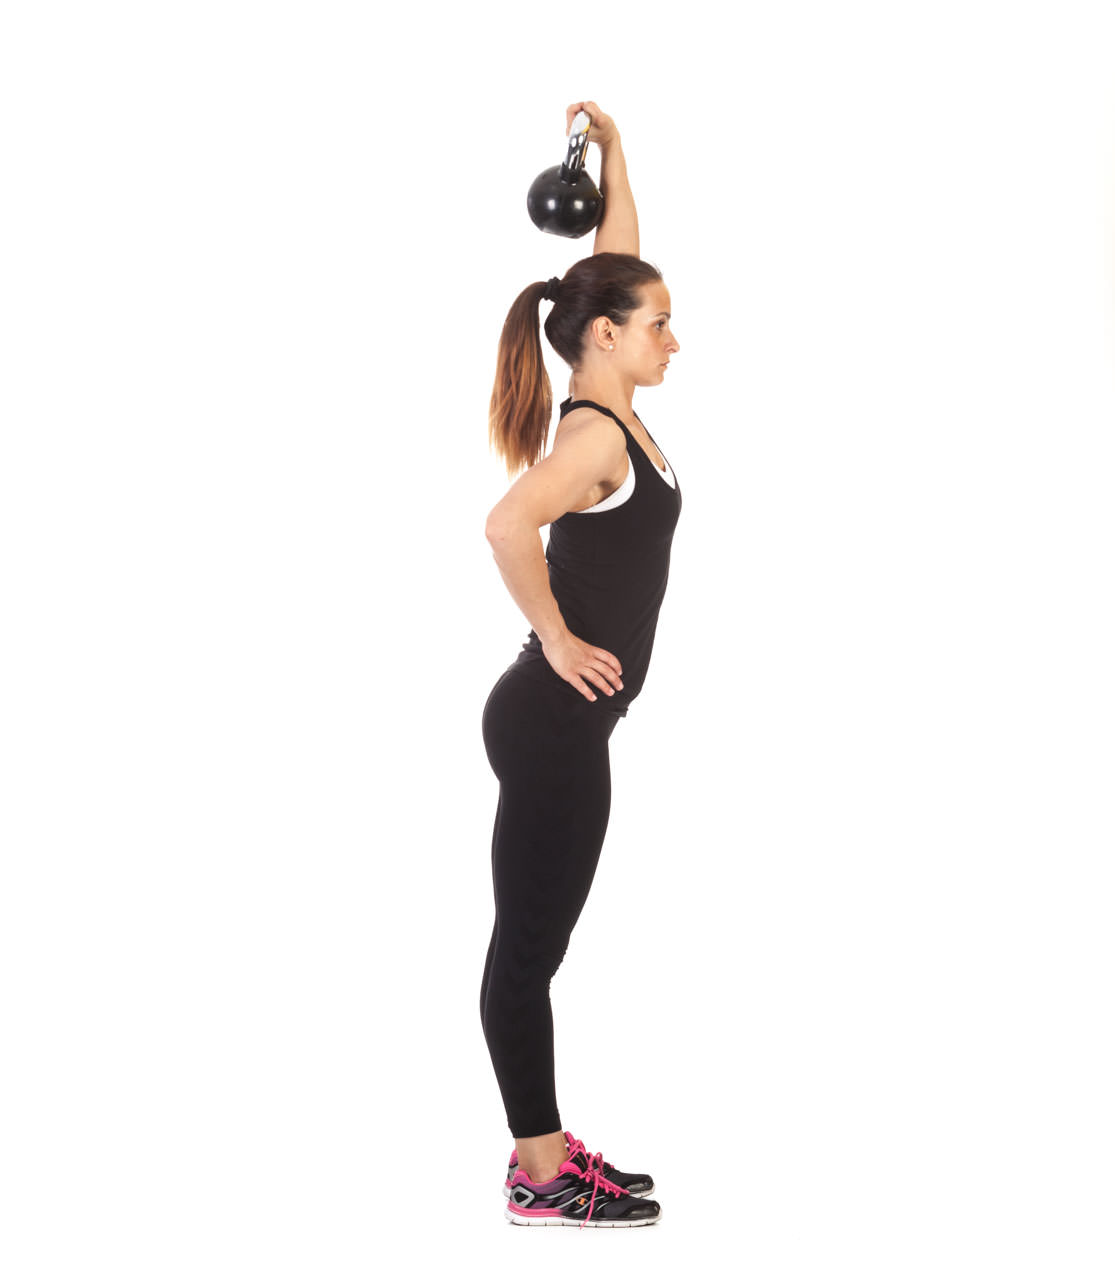 One-Arm Kettlebell Lunge frame #1